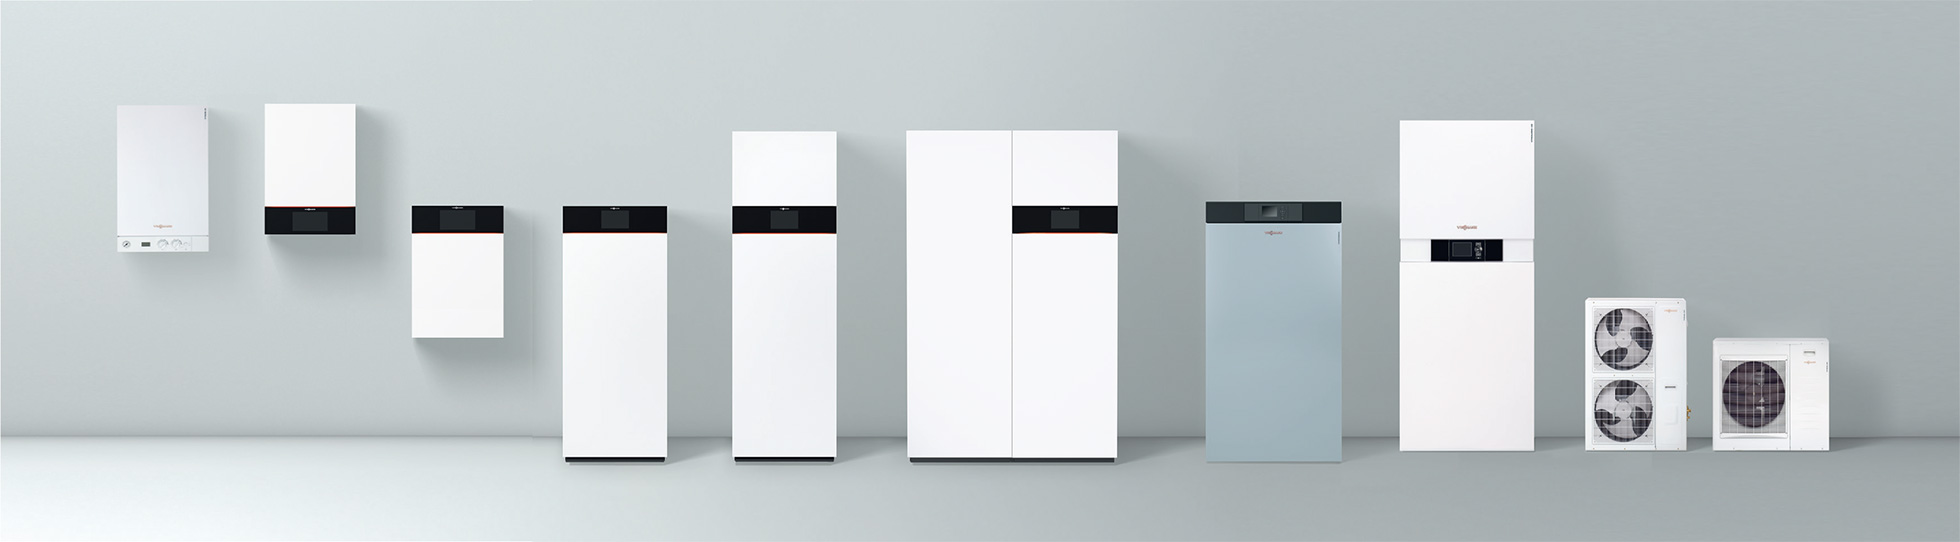 VIESSMANN Nouvelle gamme Vitodens 200 - CHAUFFAGE PABST